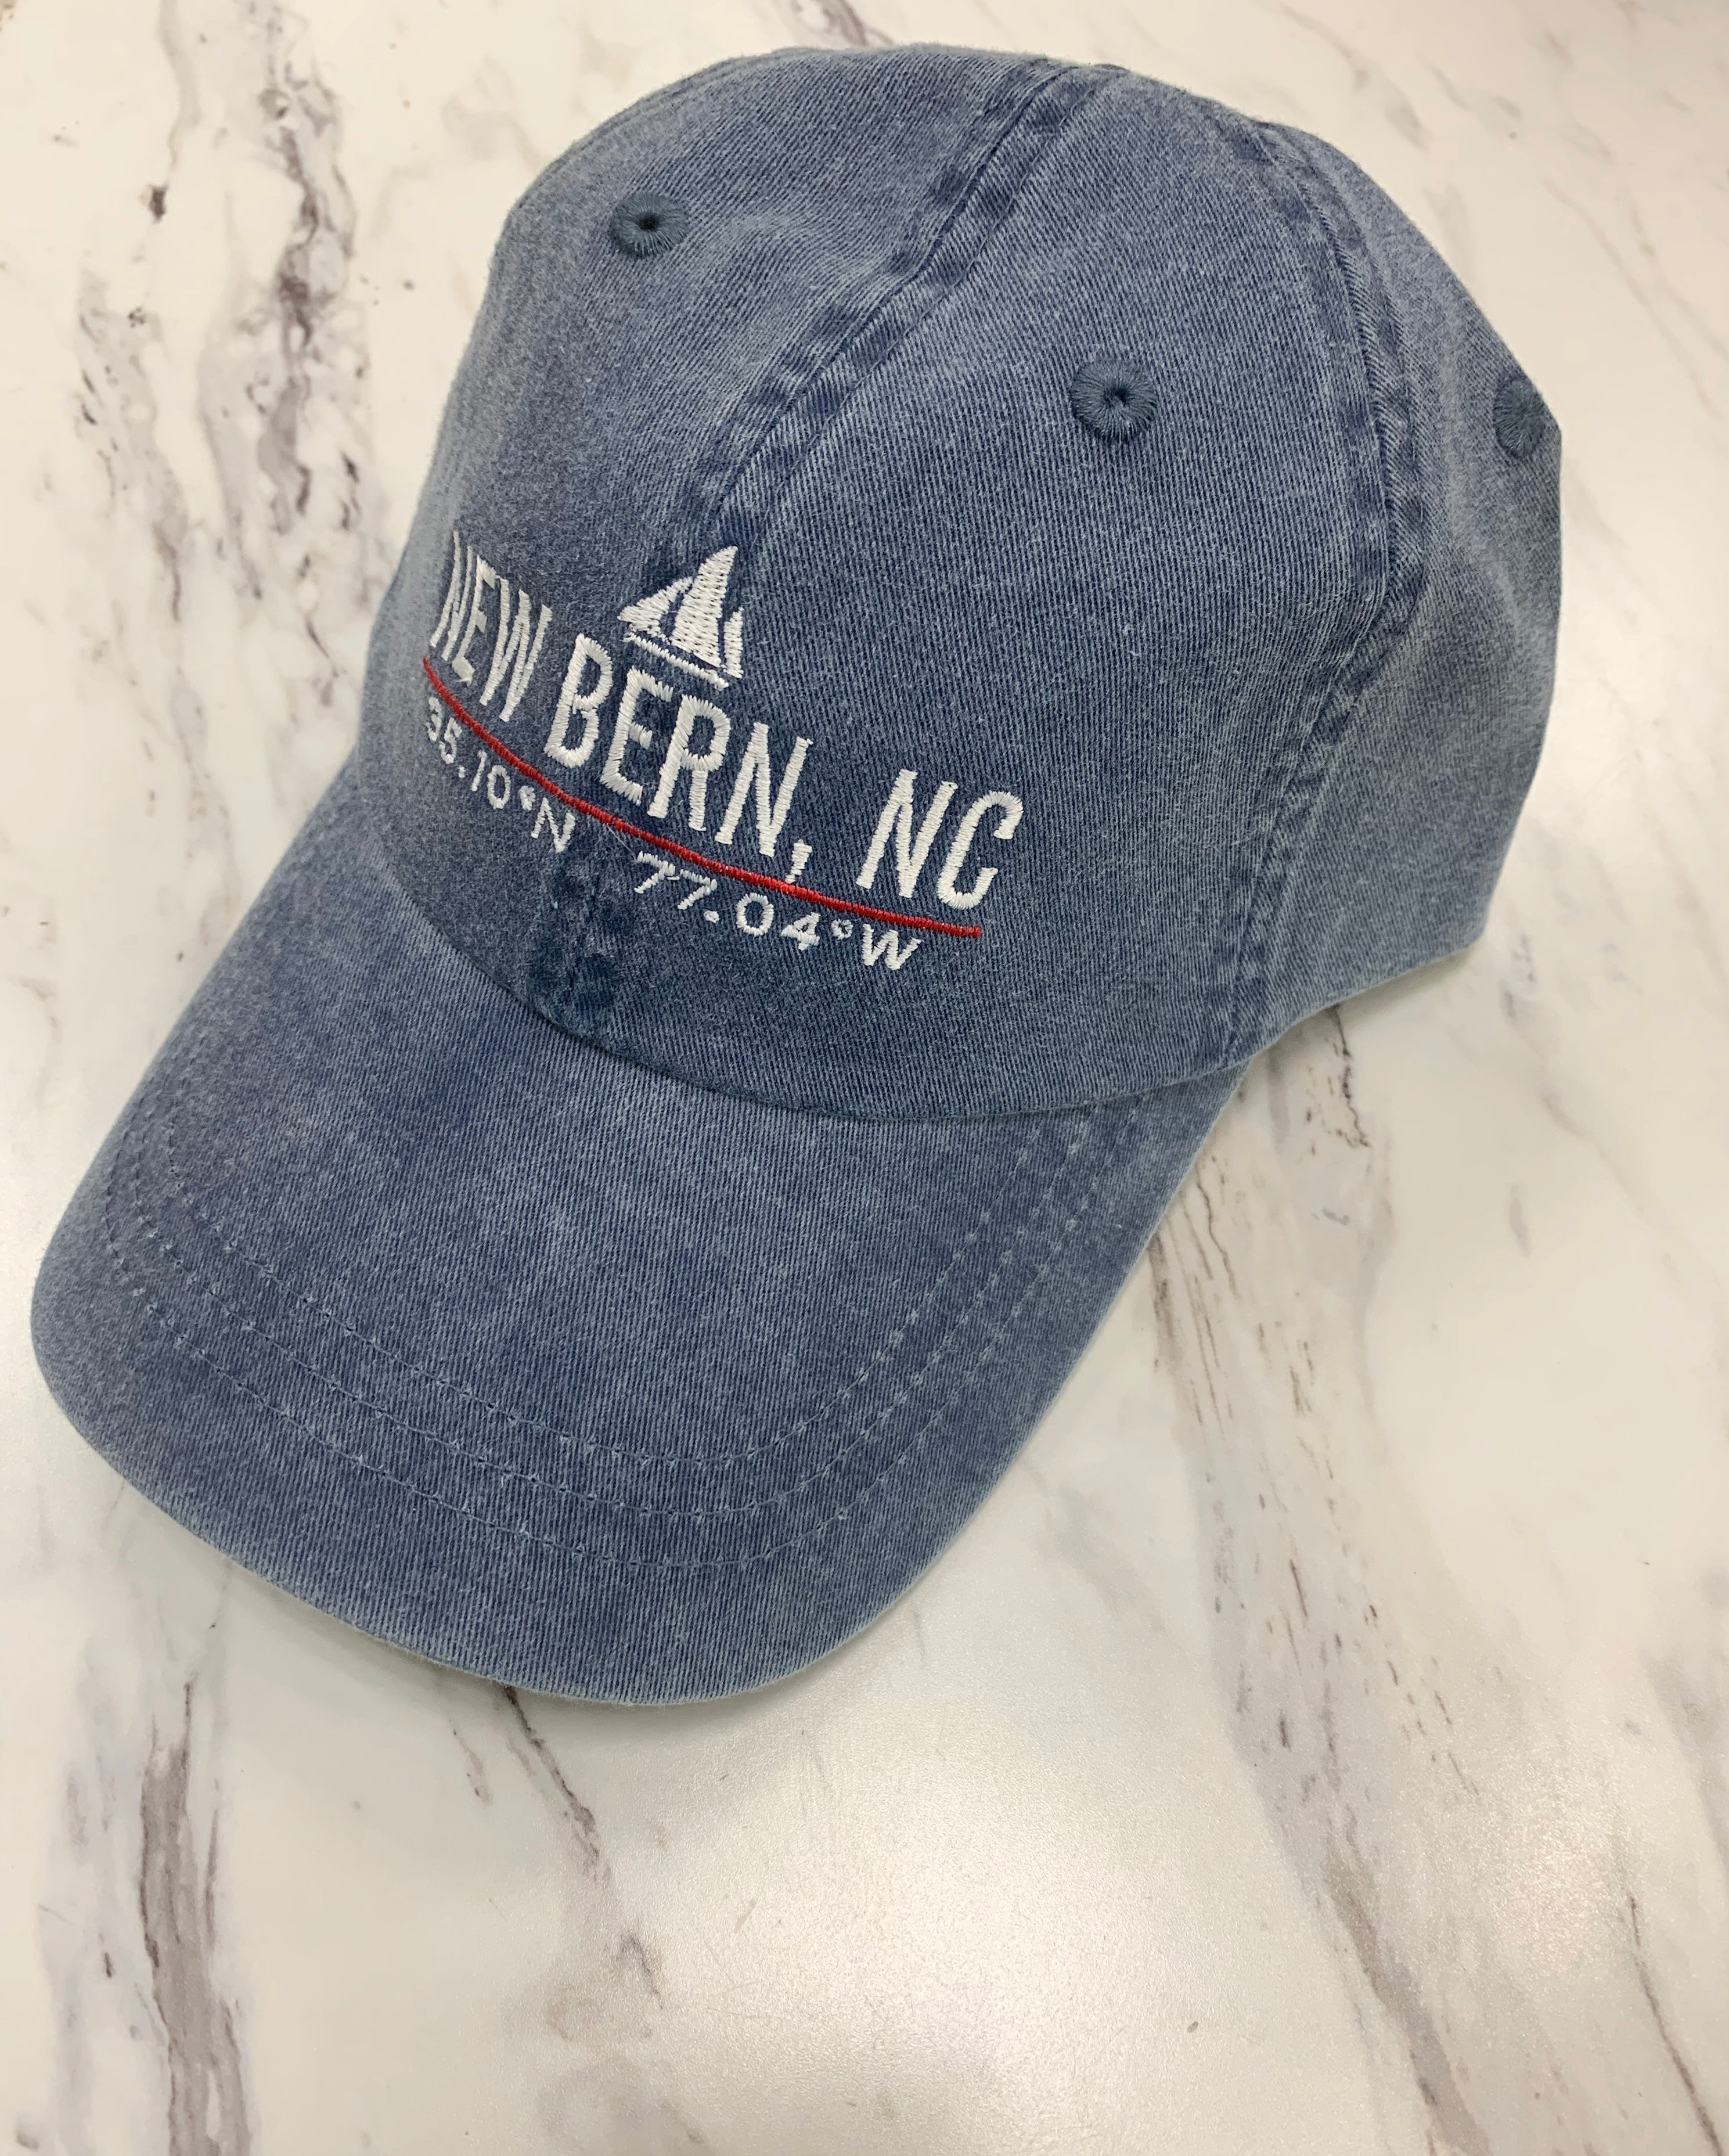 StraightUp Sailboat New Bern Ball Cap